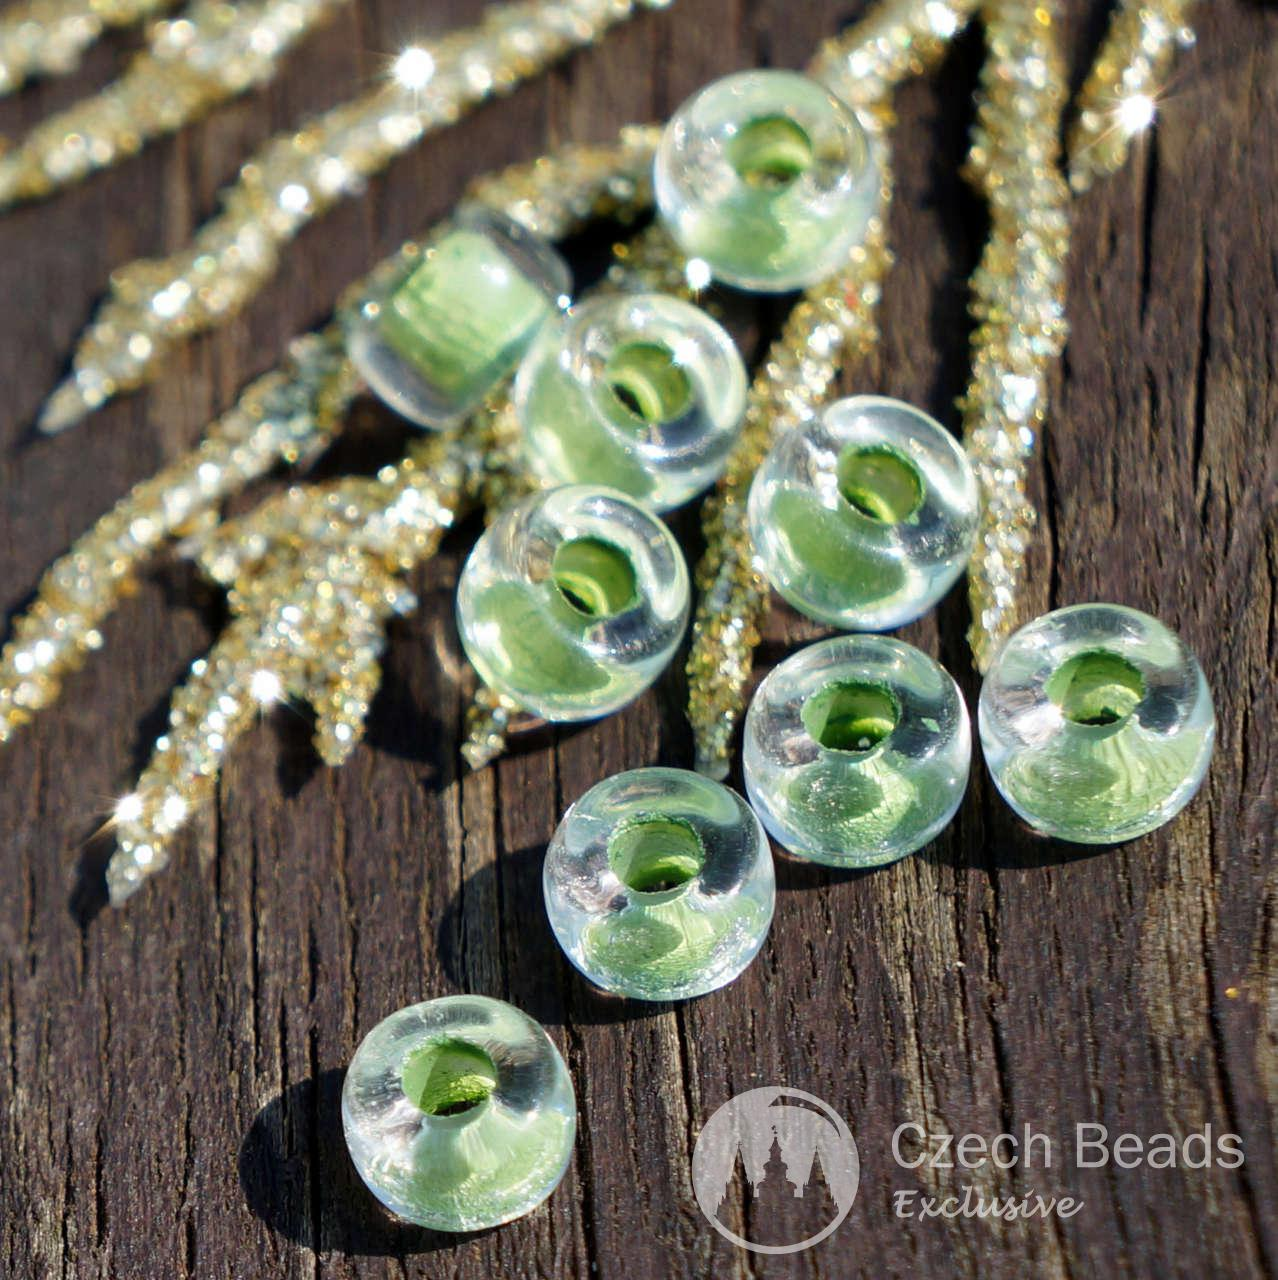 Clear Green Pony Beads Green Ring Beads Green Glass Pony Beads Green Round Czech Glass Beads Roller Beads Glass Crow Beads 6mm x 3mm 50pc for $2.33 from Czech Beads Exclusive